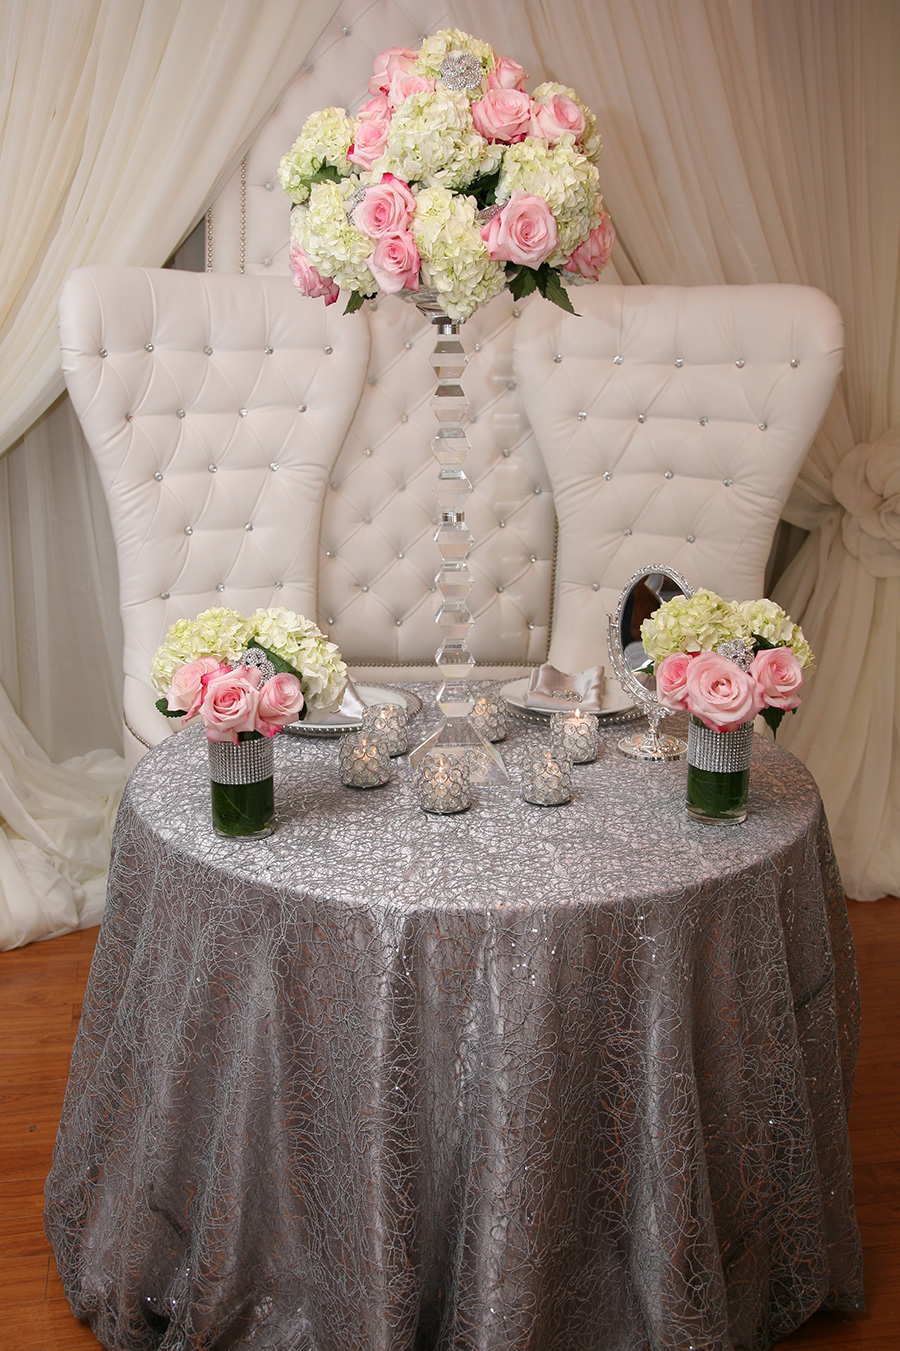 Corded Style Overlay Table Cover 2